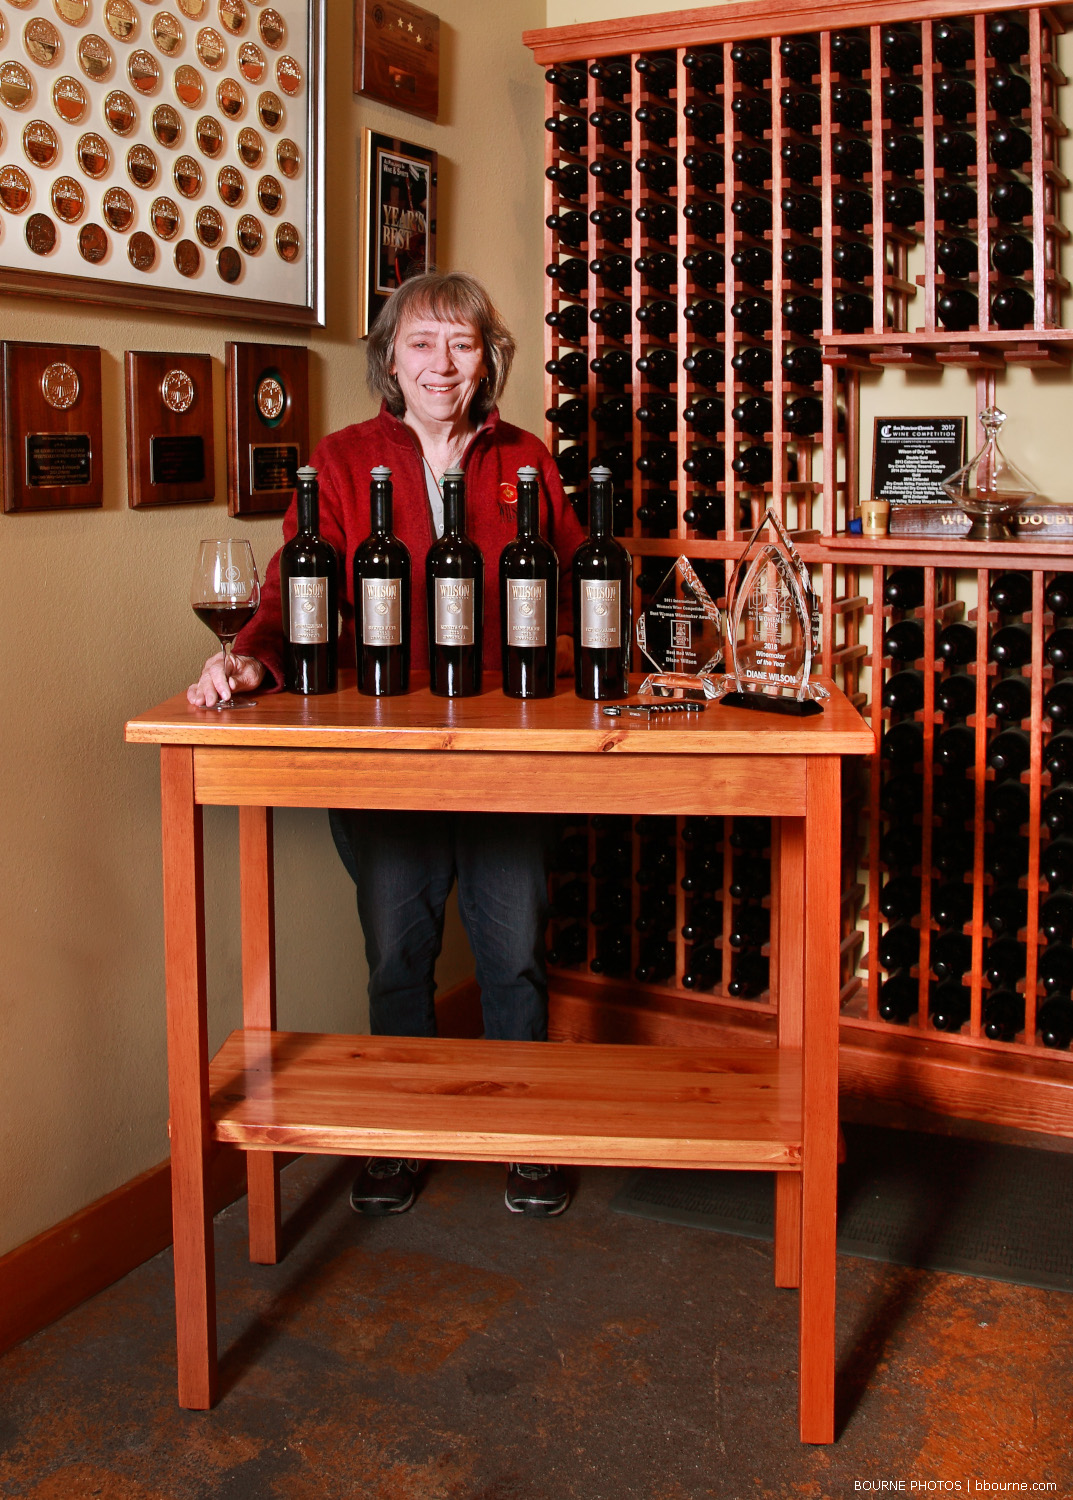 jean posing in tasting room with bottle of wine and a glass of wine in front and medals and more bottle in the back.